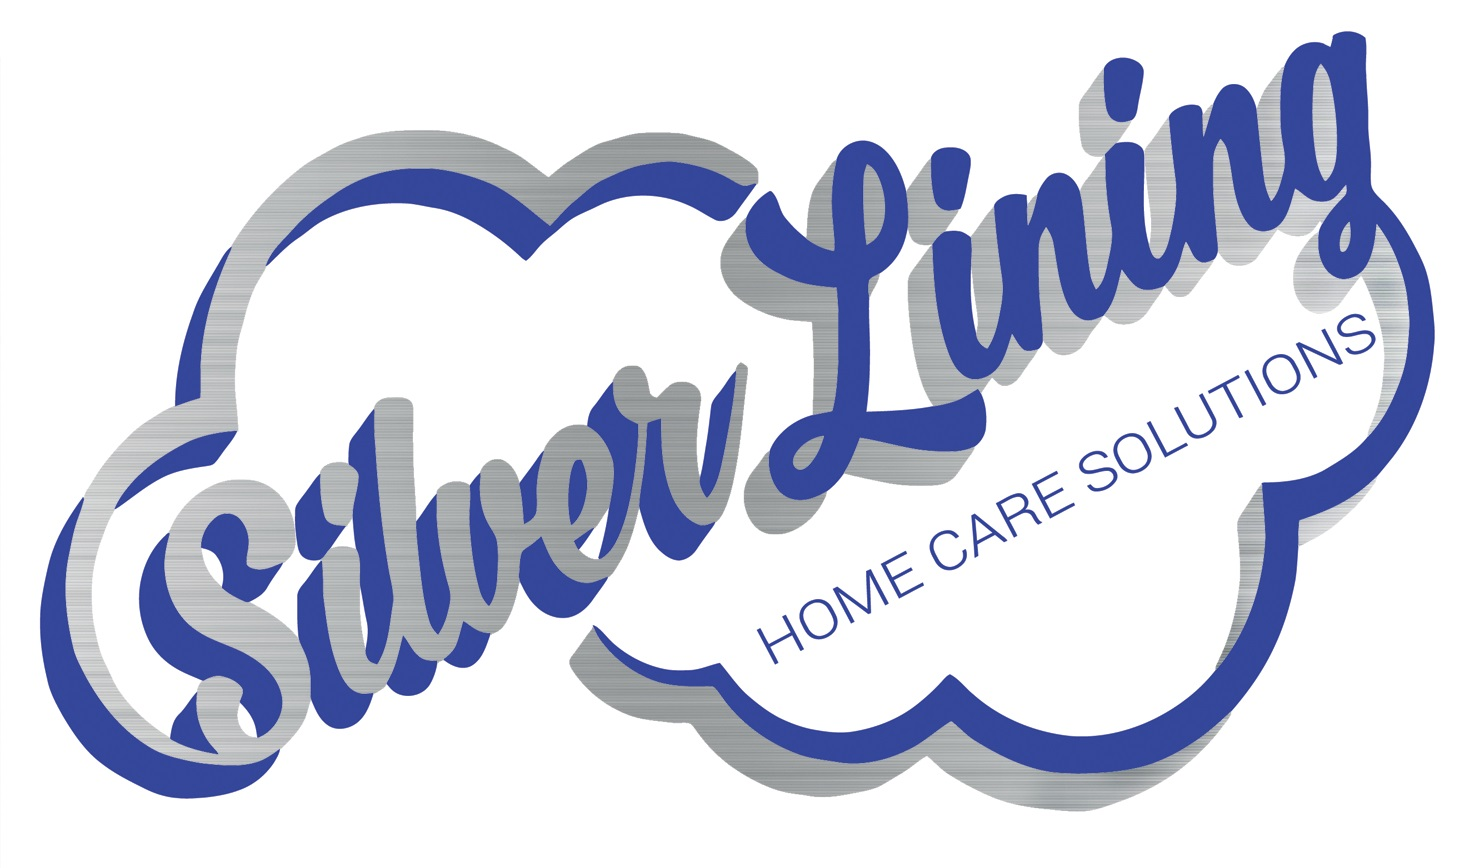 7. Silver Lining Home Care Solutions (DENTON County- Silver)